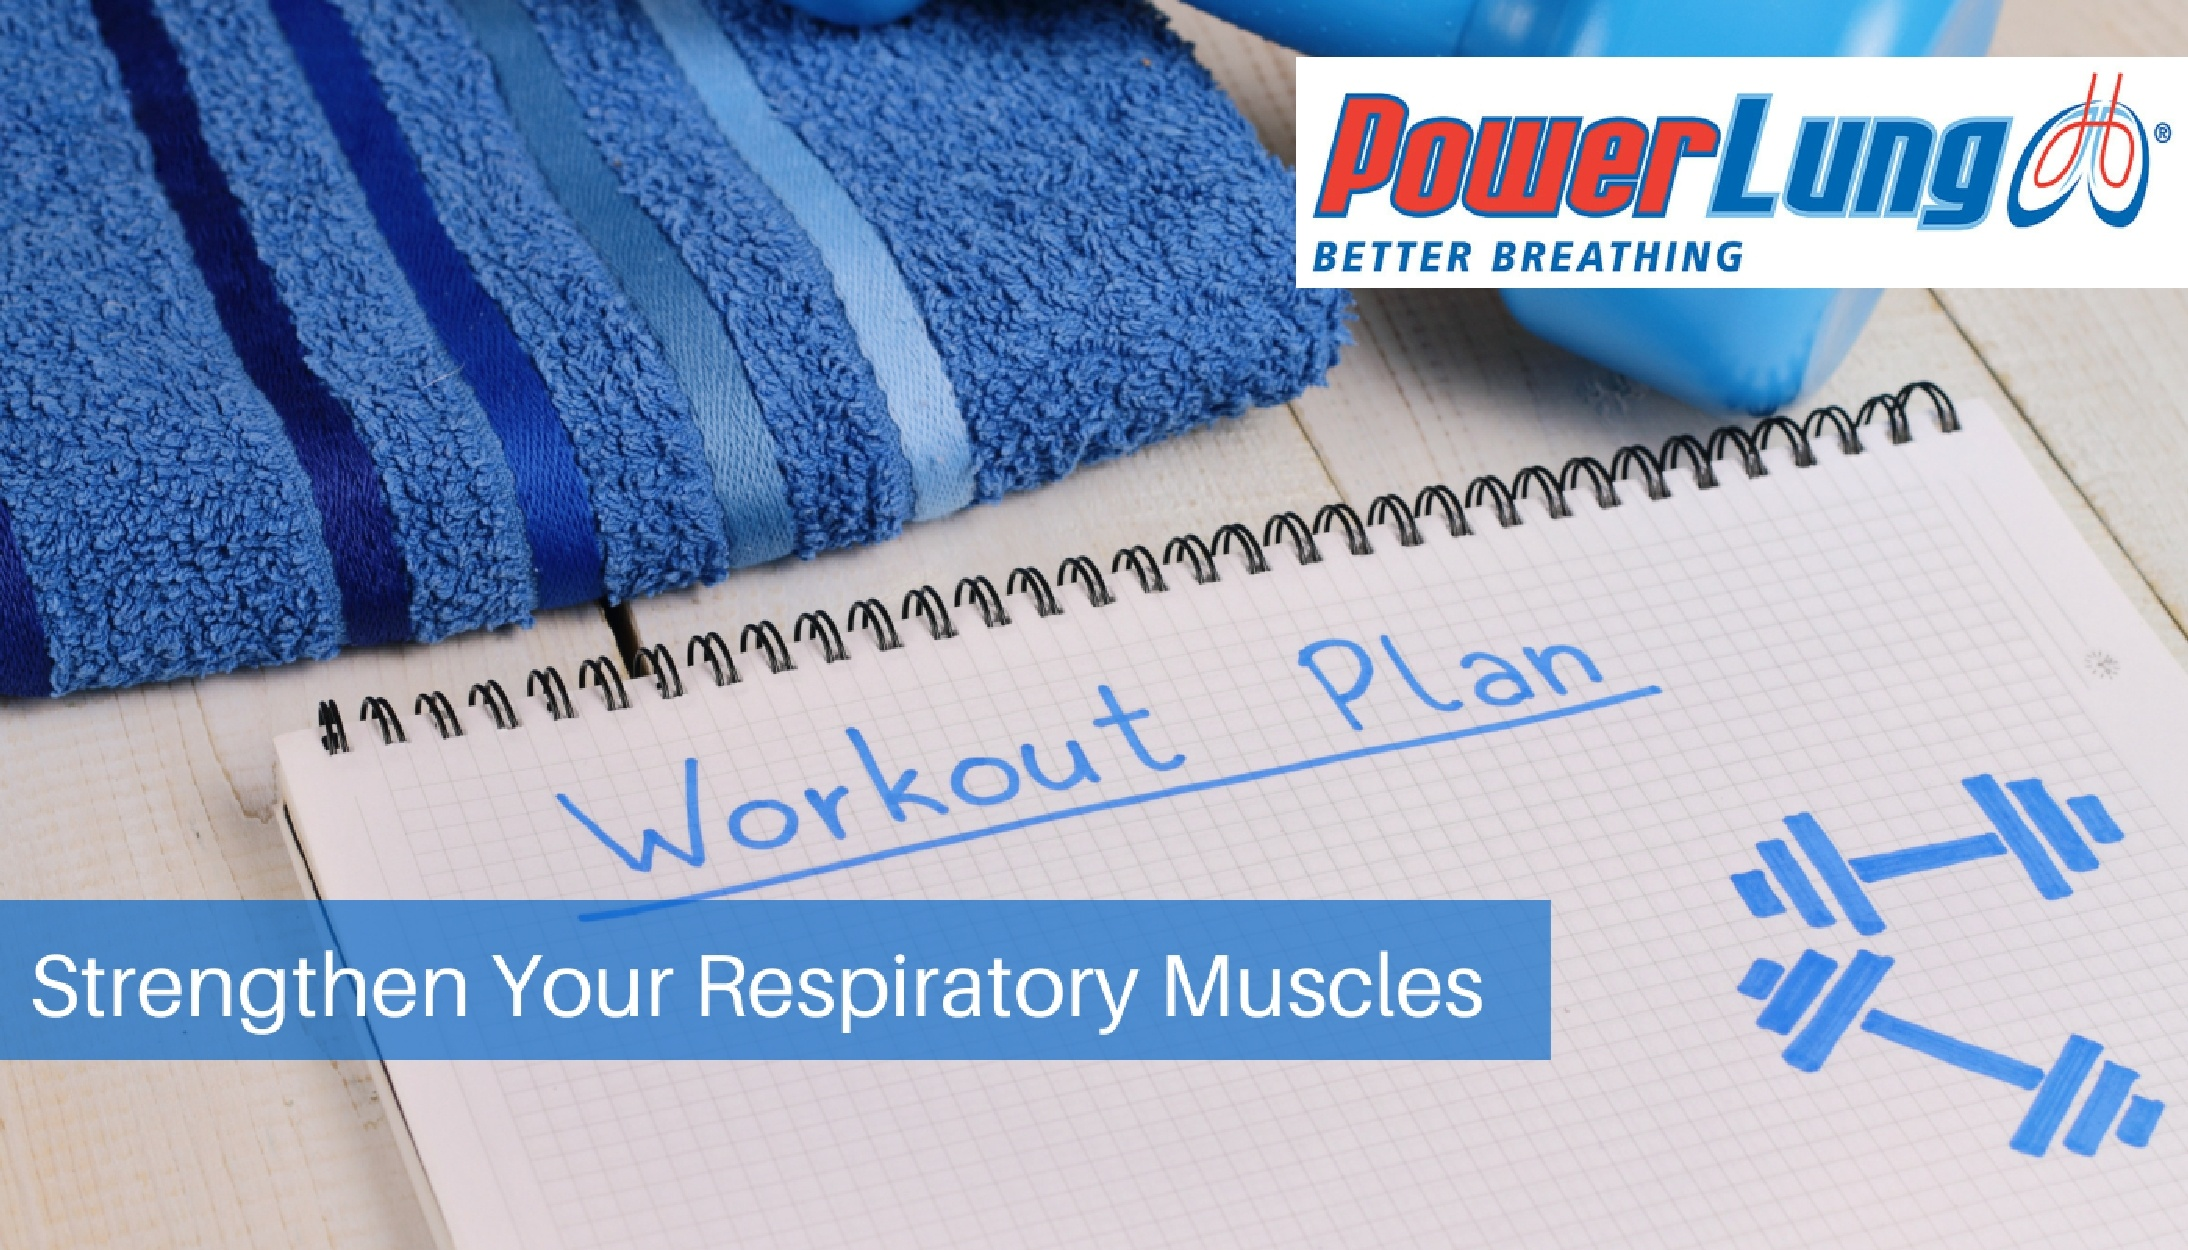 PowerLung - Strengthen Your Respiratory Muscles.jpg